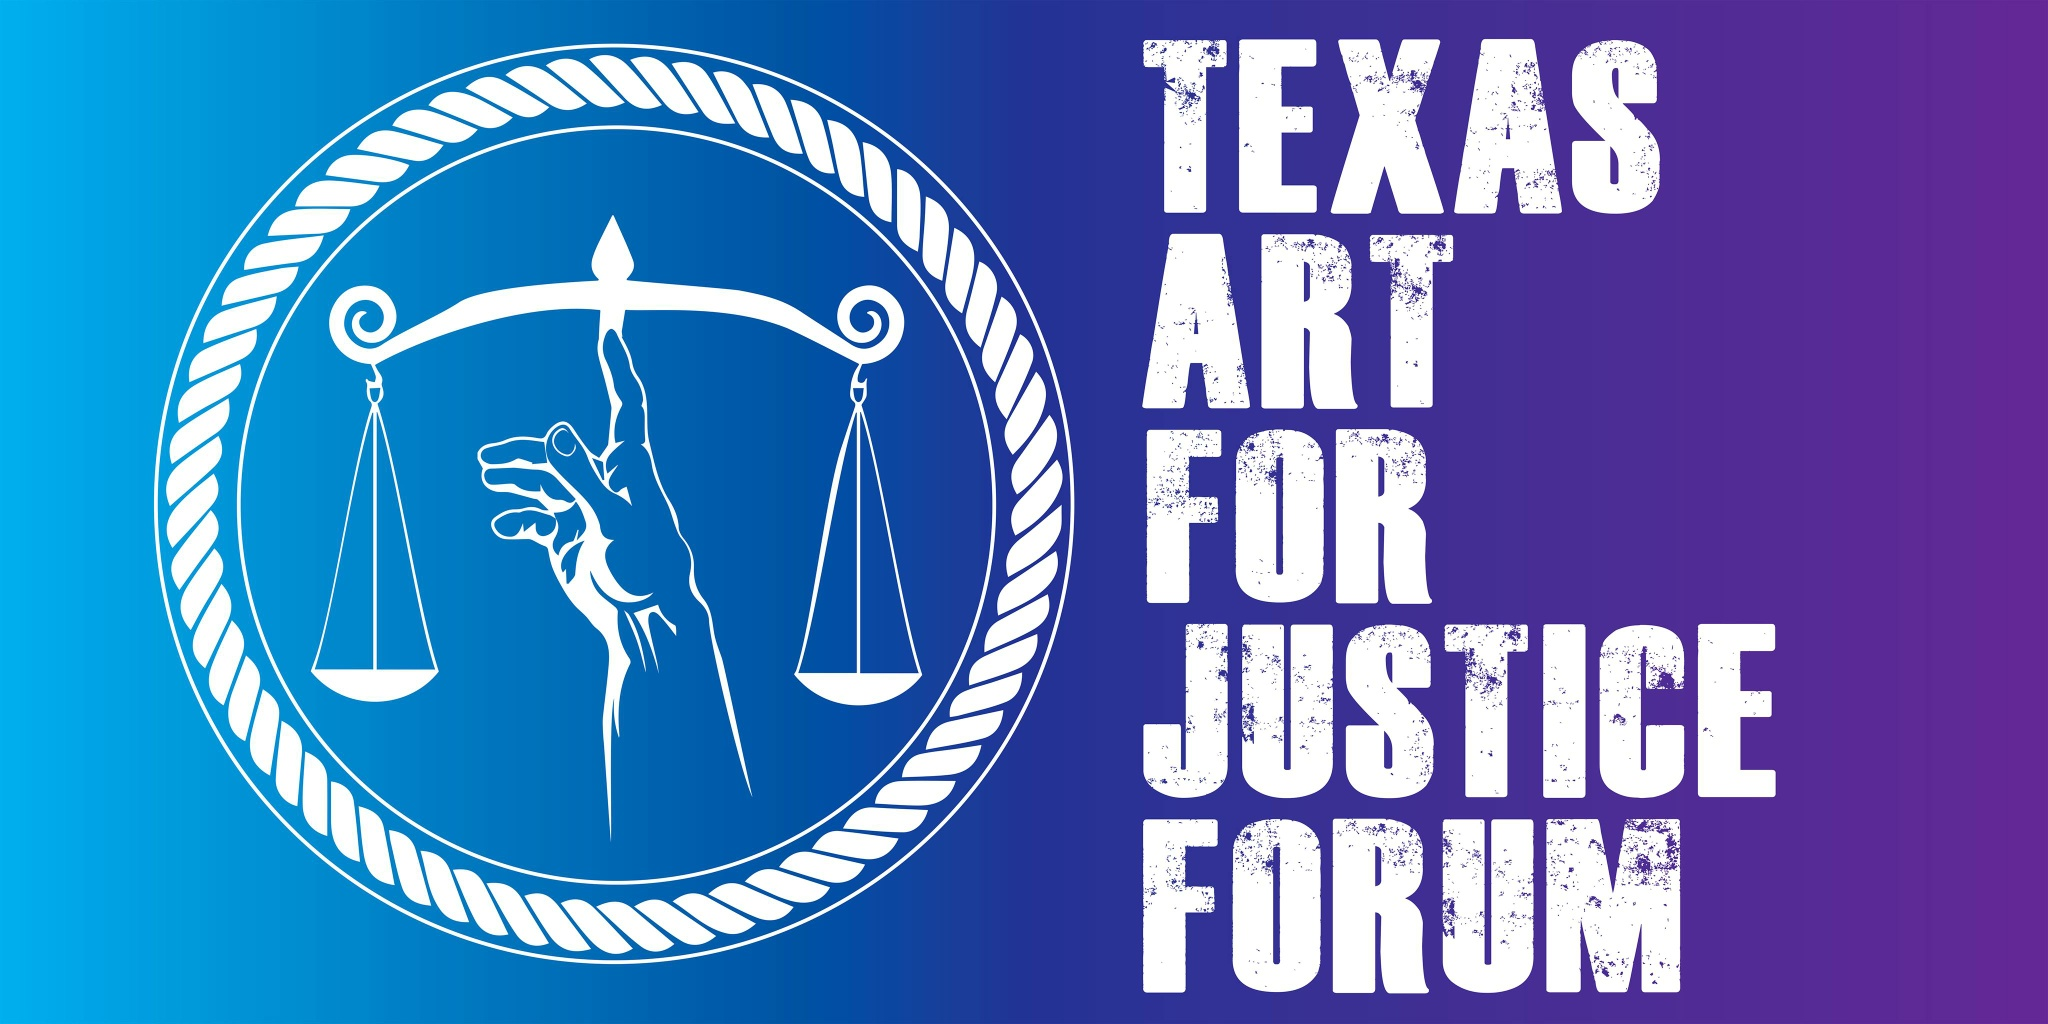 The Houston Museum of African American Culture (HMAAC) and Texas Lawyers and Accountants for the Arts (TALA), in collaboration with California Lawyers for the Arts (CLA), will convene the Texas Art for Justice Forum on July 14, 2018 at the Museum. The forum is designed to expand the role that the arts can play in addressing mass incarceration and criminal justice reform as part of a nationwide discussion in six states.   As part of this forum, the Museum will hold panel discussions that will include legislators, arts and criminal justice reform advocates and returned citizens, will facilitate dialogues in breakout sessions and will curate a month long exhibition of artwork created by incarcerated individuals and returned citizens. This program is funded by the Art for Justice Fund, the Andy Warhol Foundation, the Quentin Hancock Fund and the Texas Commission on the Arts.   Join HMAAC, TALA, CLA and Texans for the Arts in dialogue and discussions geared toward recommendations to advance criminal justice reform through arts engagement.  The event will be held from 9:30 am to 6 pm on Saturday, July 14 at the Museum at .  Admission is free, but your RSVP is requested in advance by July 12 on Eventbrite.